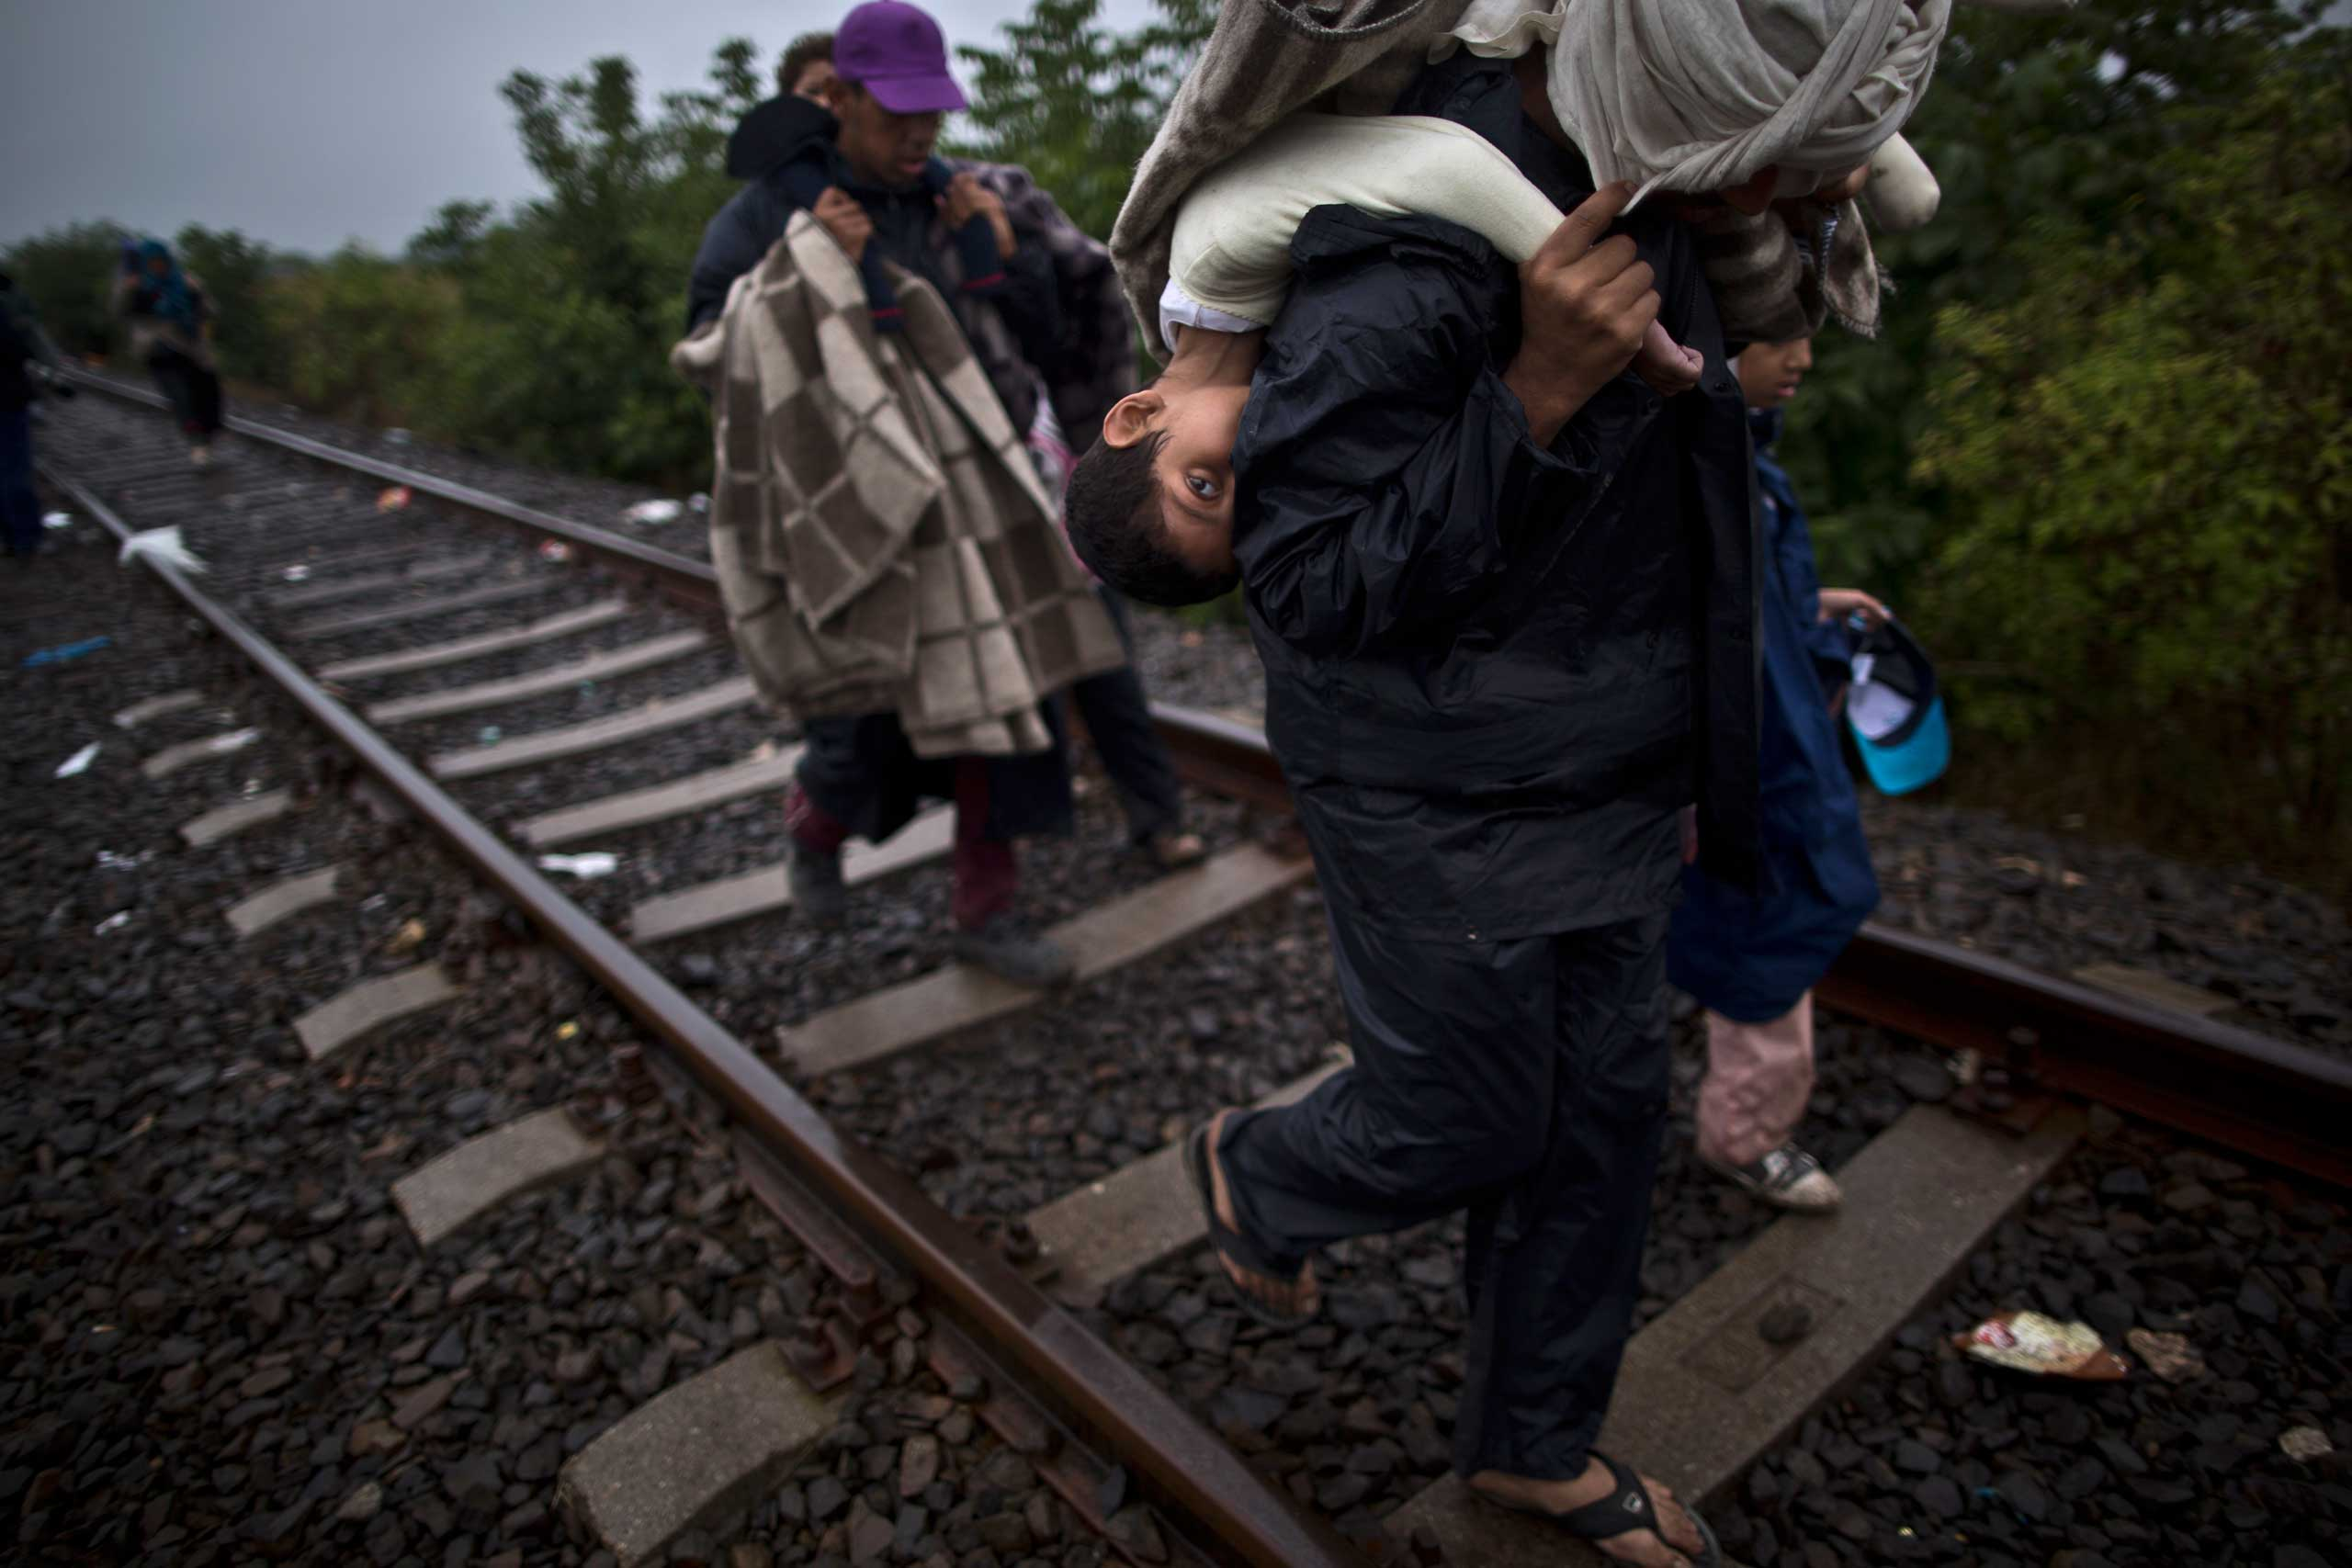 Bara'ah Alhammadi, 10, a Syrian refugee, is carried on the back of her father as they make their way along a railway track after they crossed the Serbian-Hungarian border near Roszke, on Sept. 11, 2015.